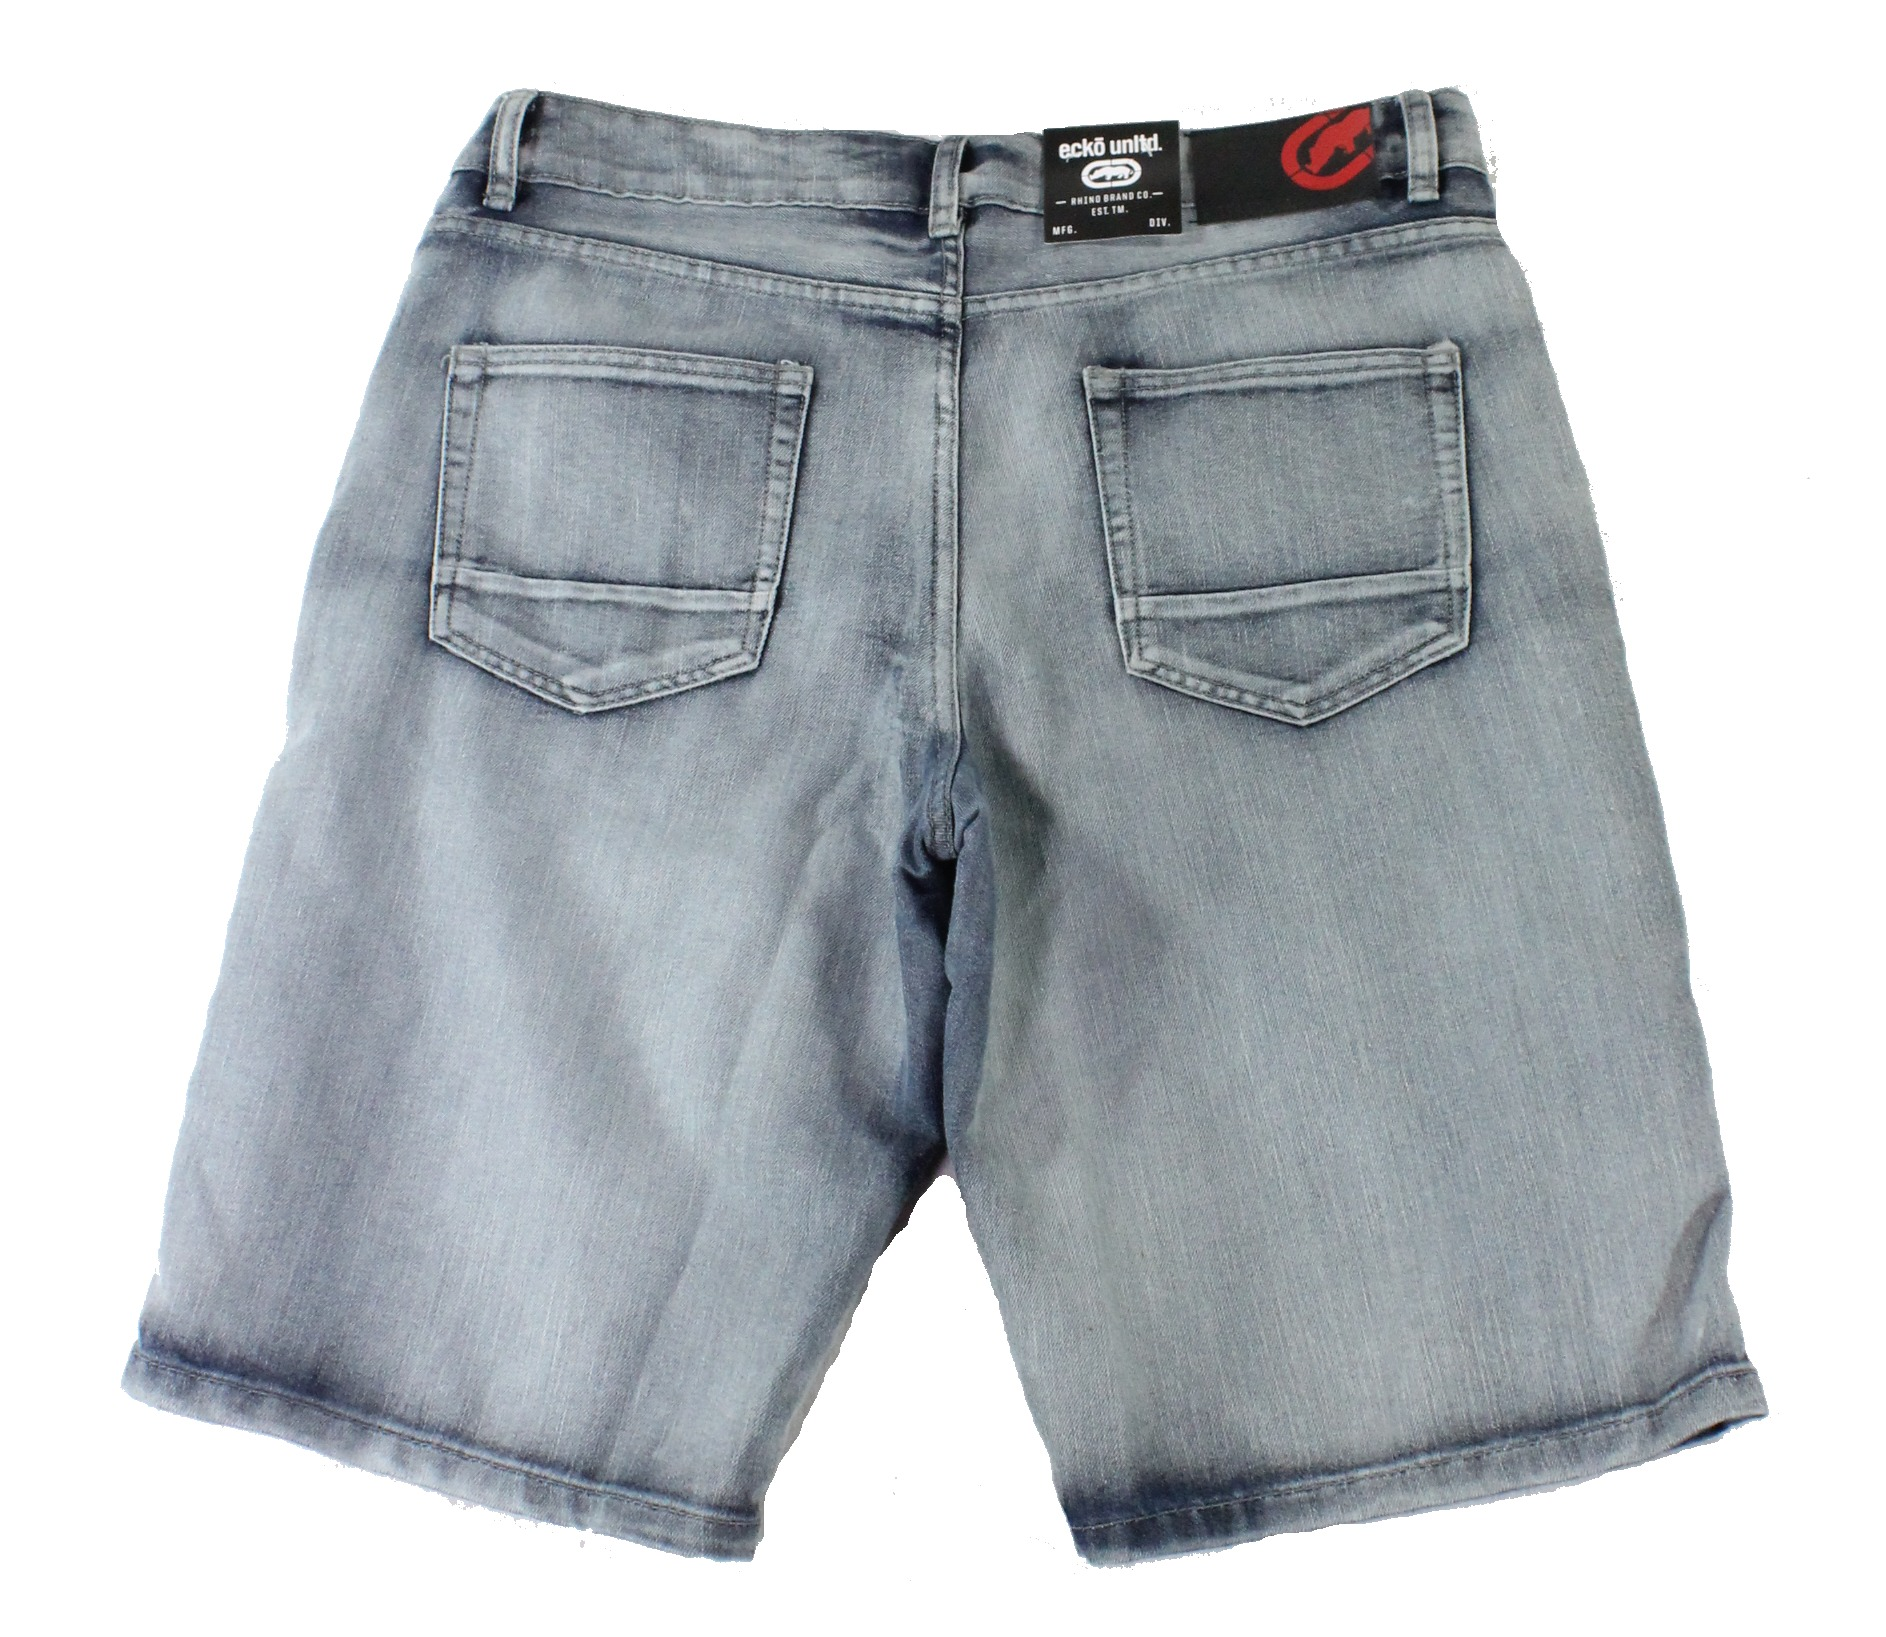 New-Ecko-Unltd-Mens-Shorts-Washed-Blue-Size-34-Denim-759-Relaxed-Fit-48-209 thumbnail 2